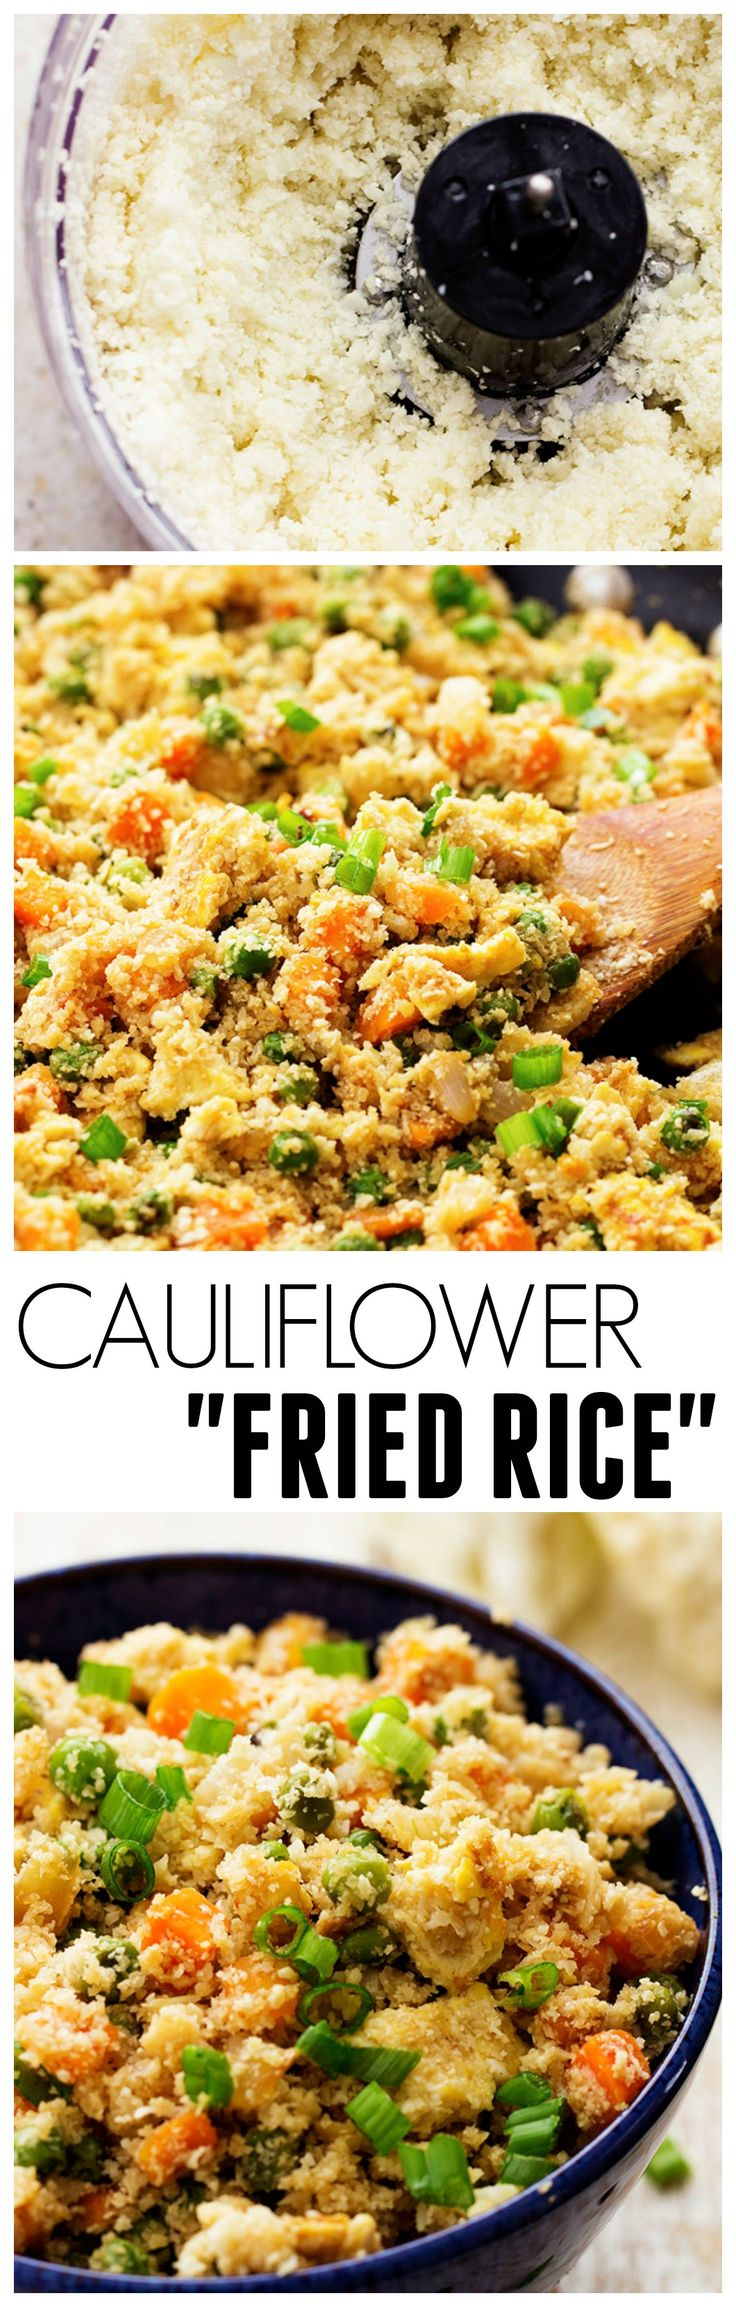 Cauliflower Fried Rice #recipe :: Use Coconut Aminos instead of soy sauce to lower sodium and to make #candidadietfriendly